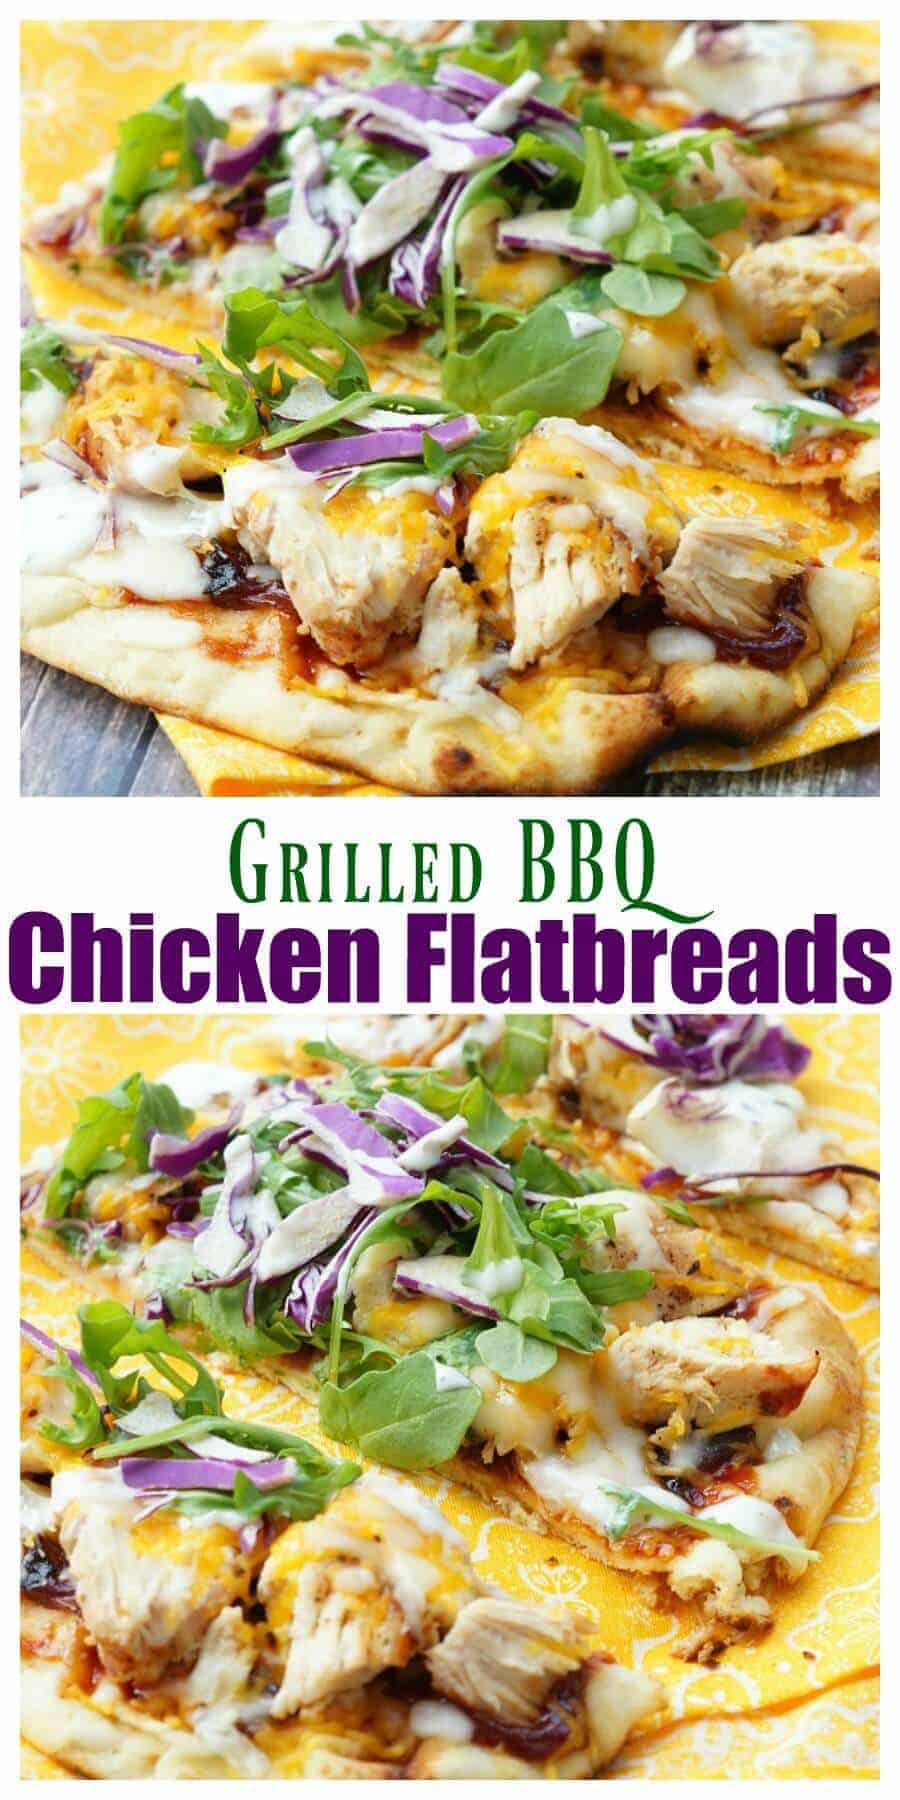 This Grilled BBQ Chicken Flatbread Recipe is so easy and flavor packed! Your family will love this easy grilled dinner recipe!